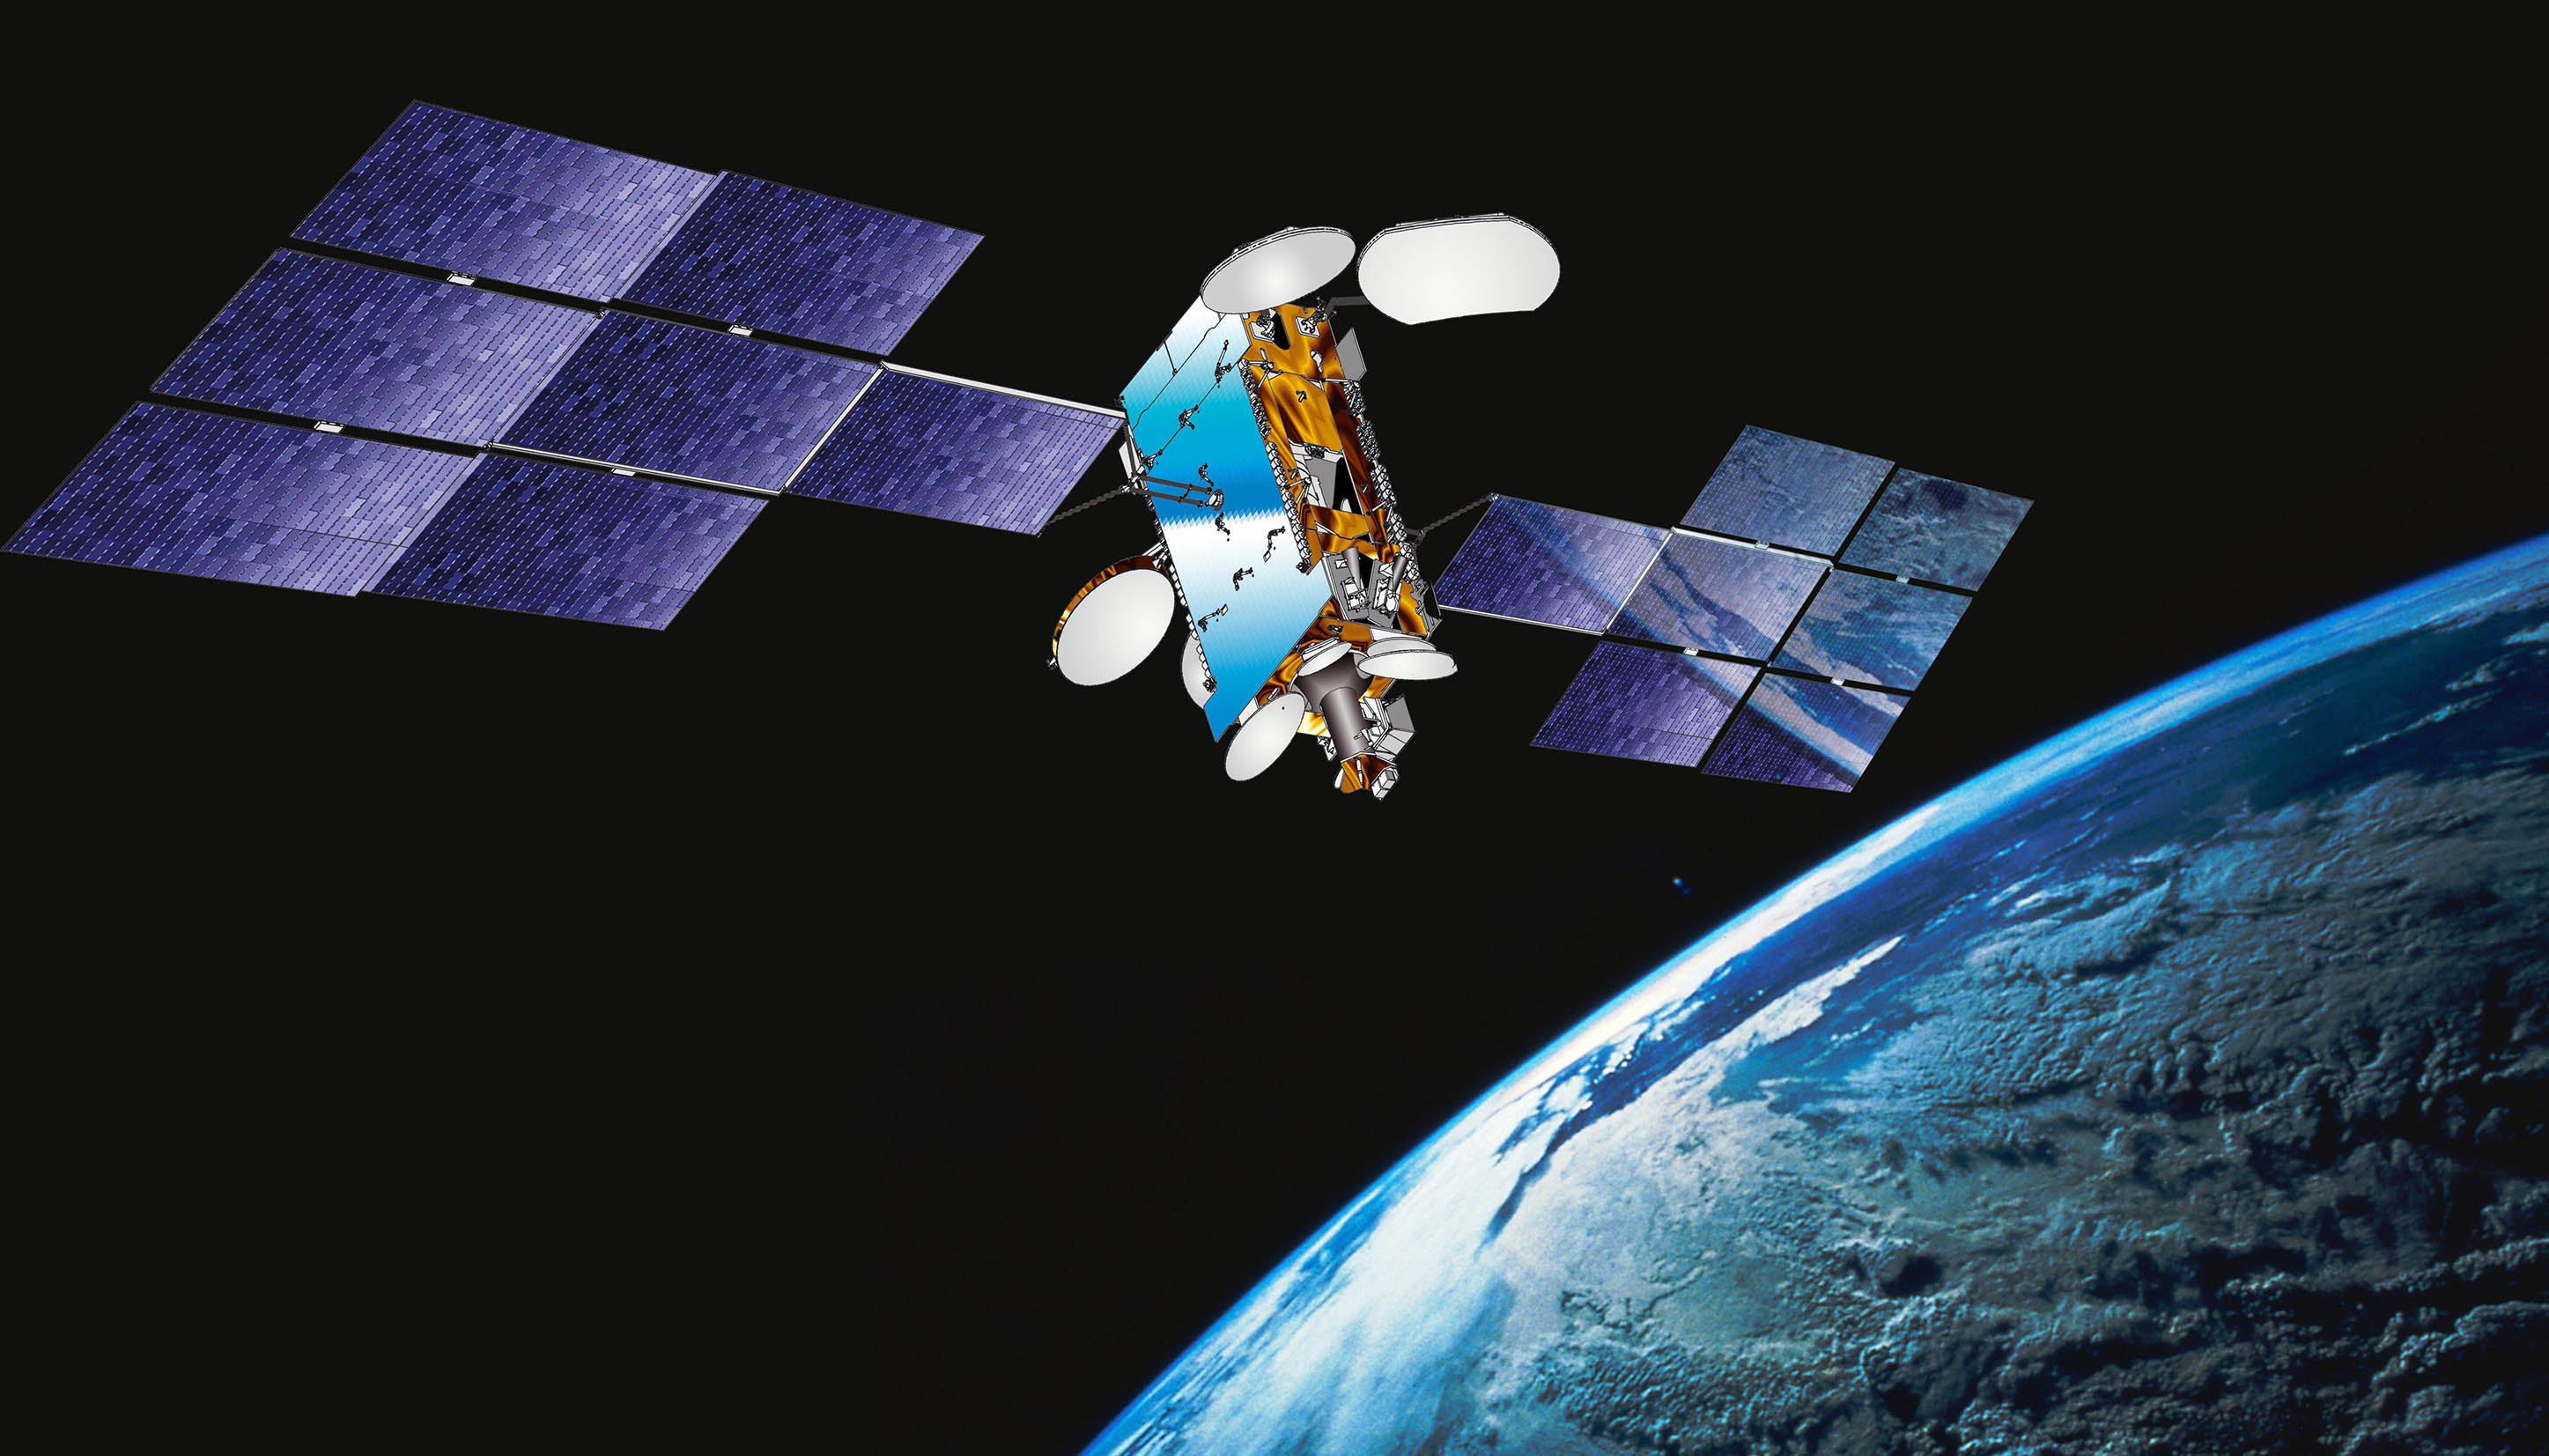 Abertis reaches agreement with Red Eléctrica on the sale of its stake in Hispasat